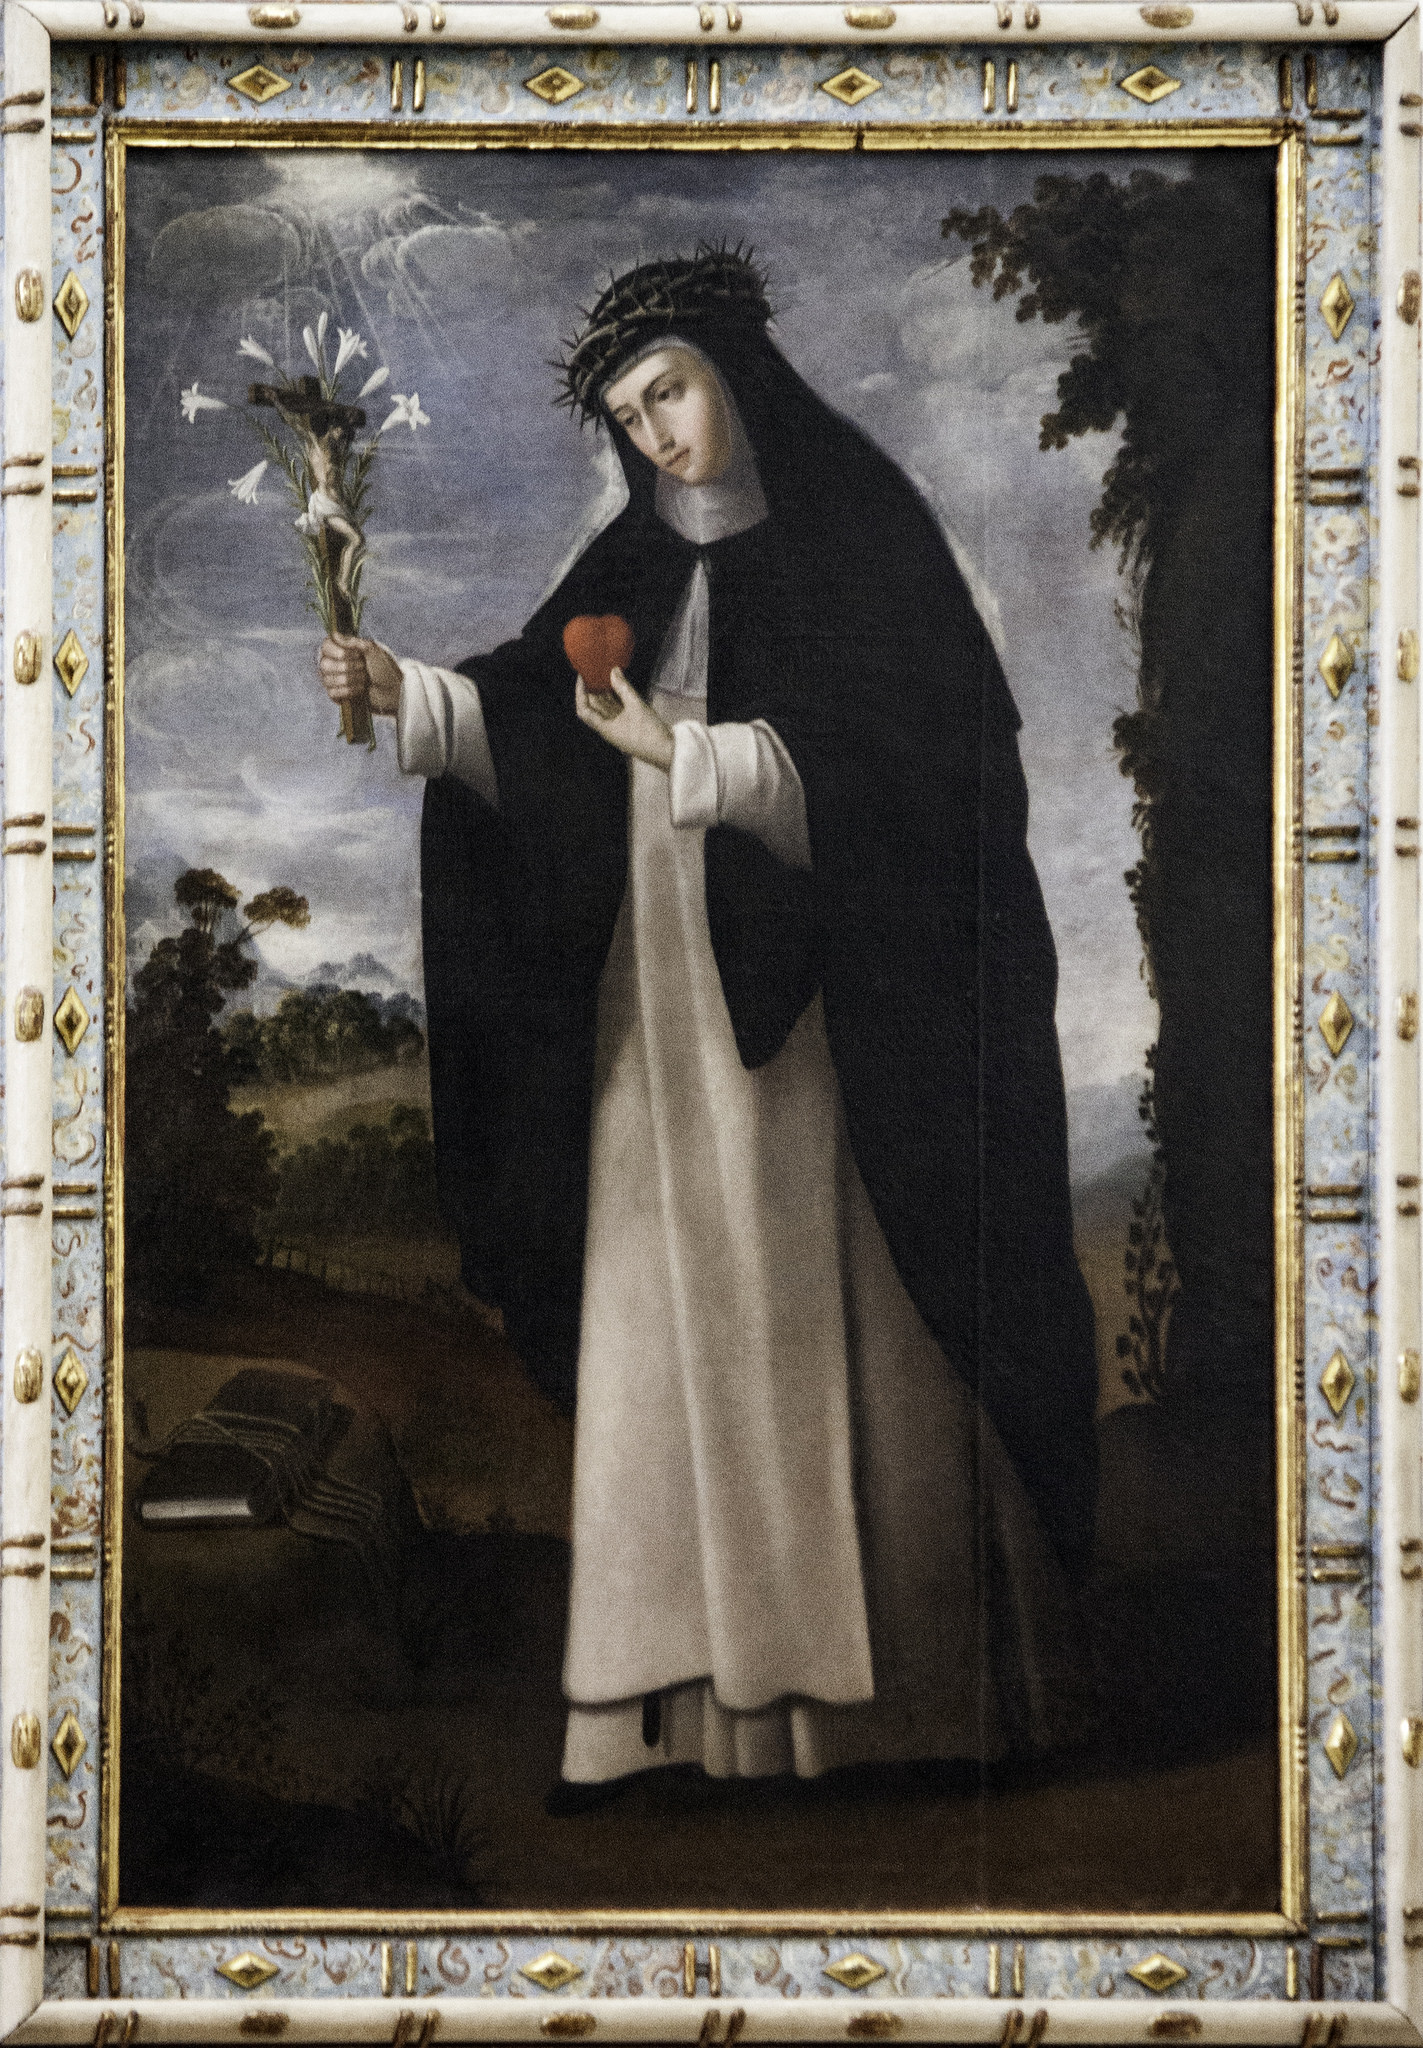 This painting of the saint is from St Dominic's church in Caleruega, Spain. - photo by Fr. Lawrence Lew, O.P.